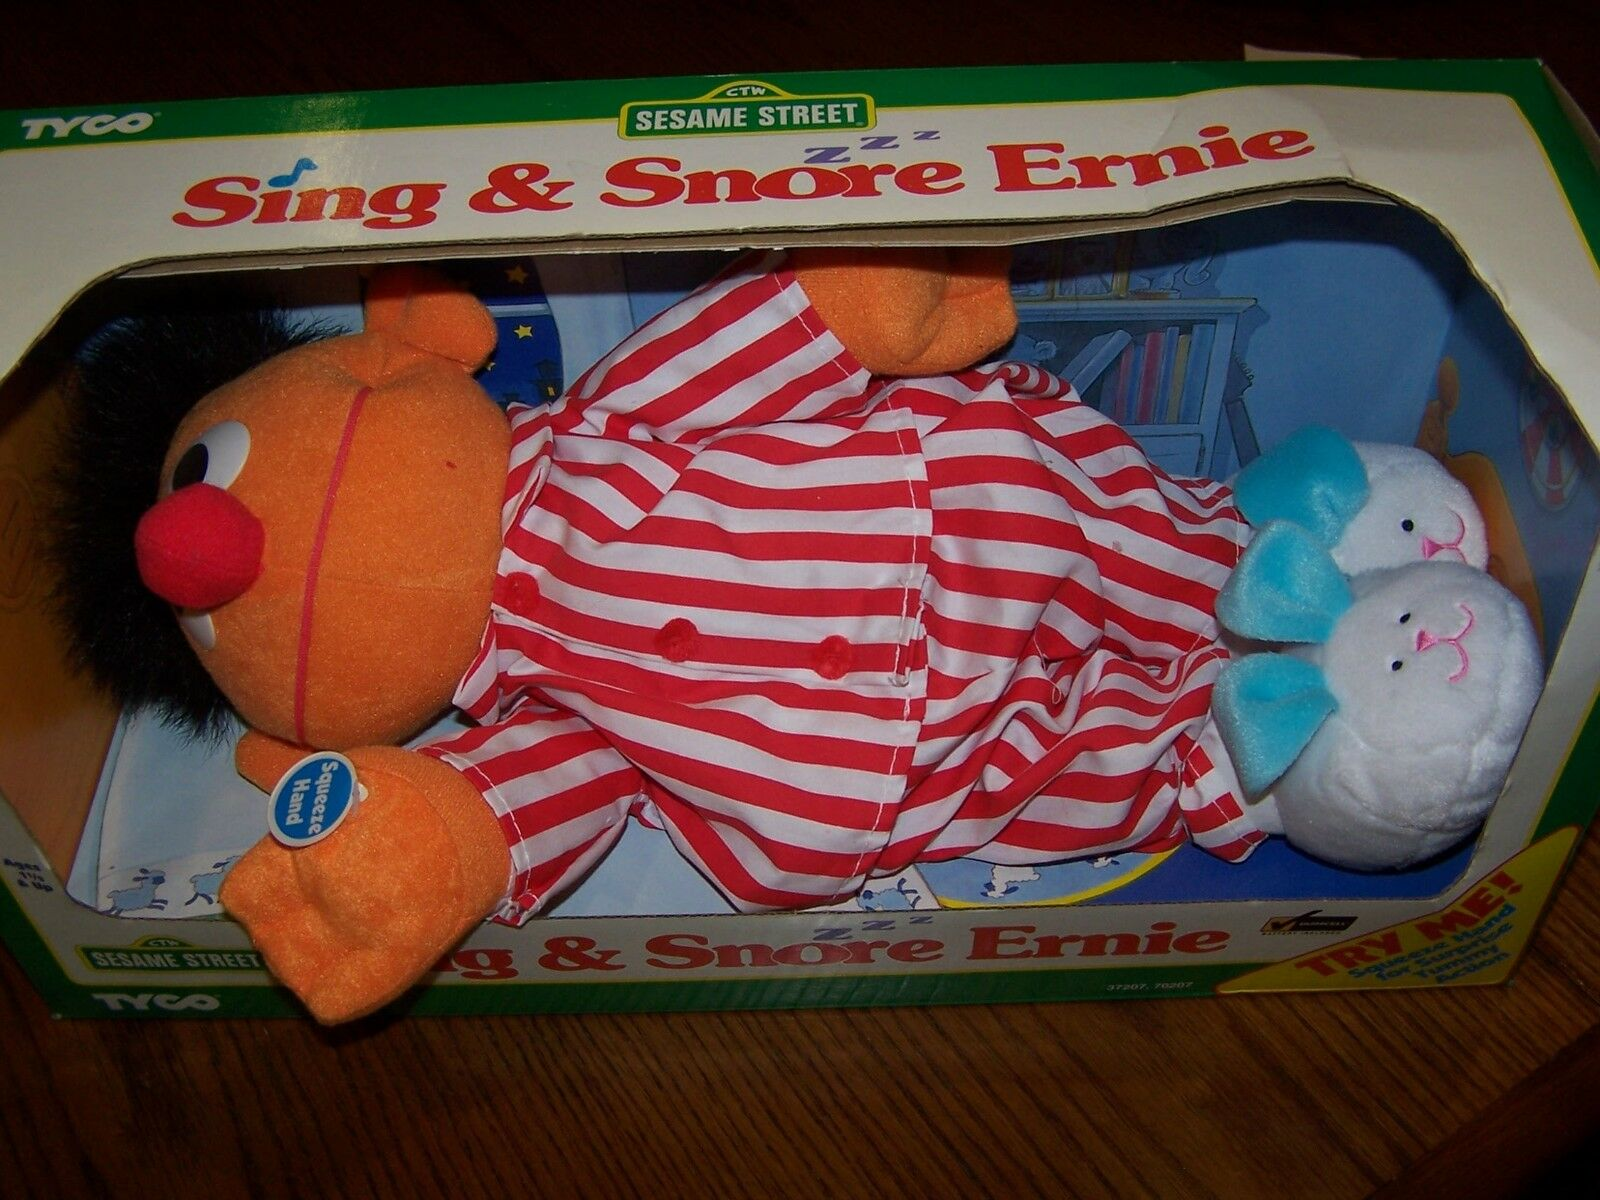 NEW IN BOX Vintage TYCO 1996 Sing and Snore ERNIE Sesame Street Collector Item